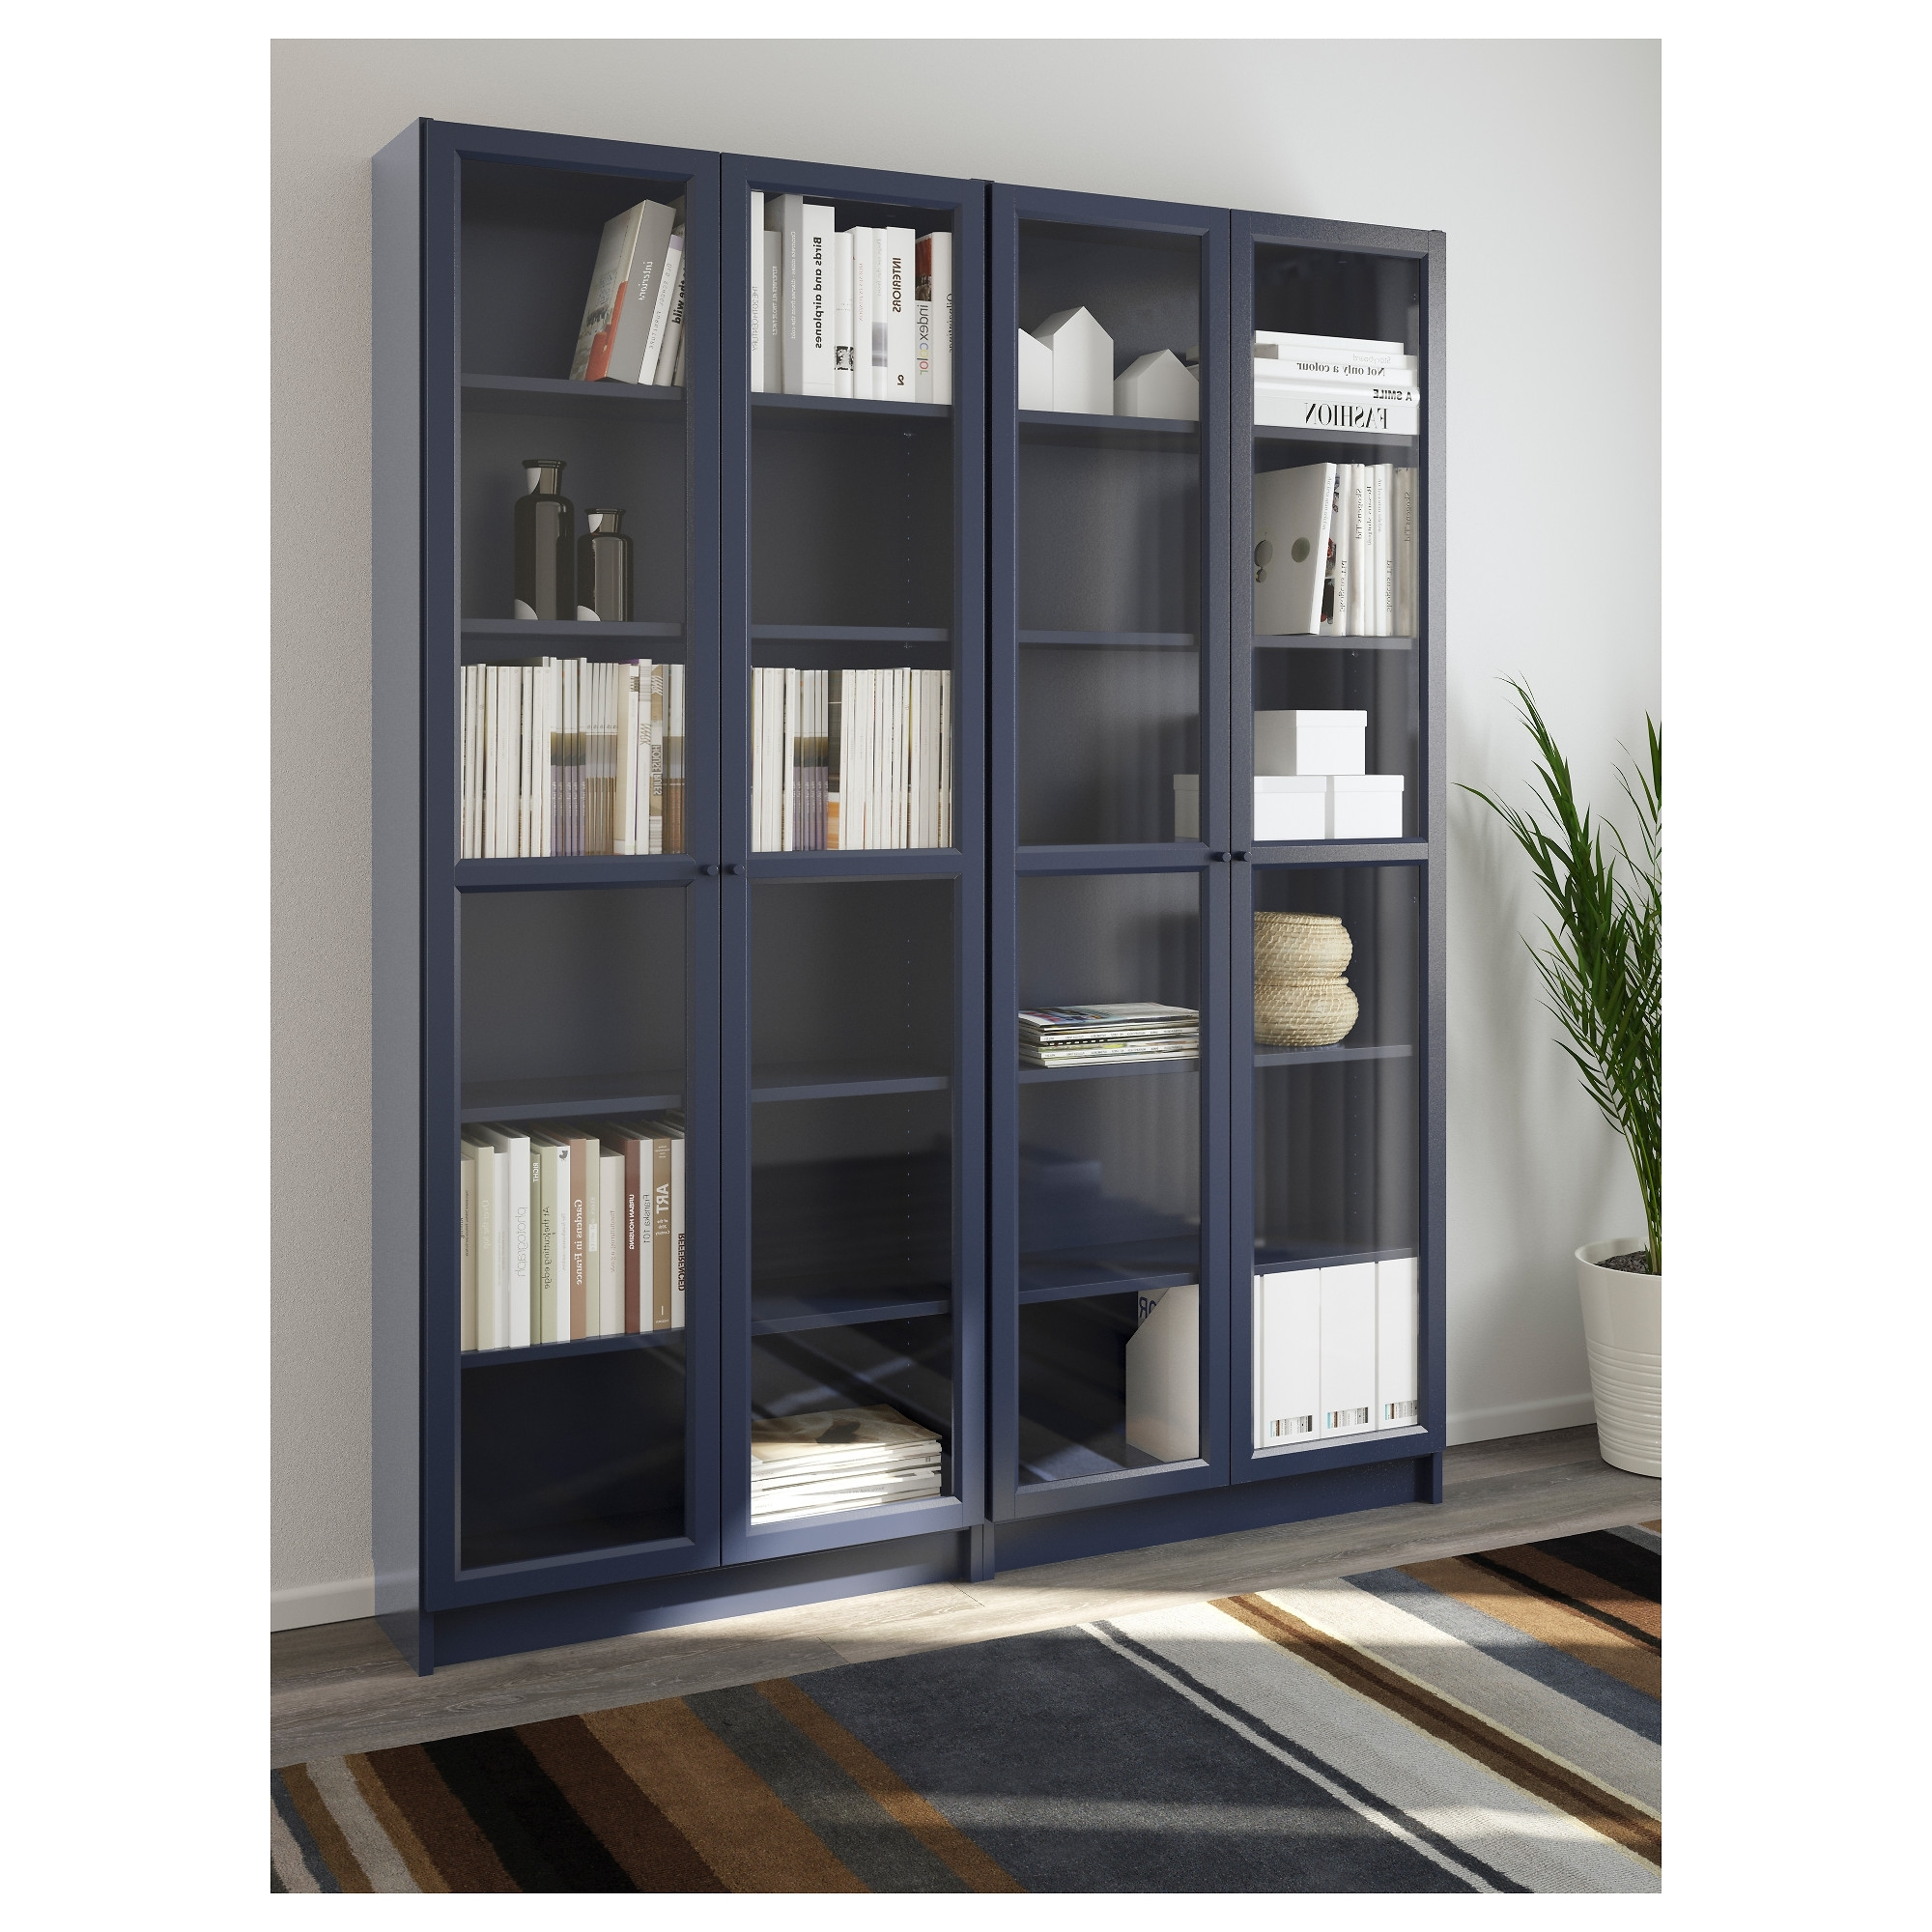 Ikea Billy Bookcases For Famous Billy / Oxberg Bookcase – White/glass, 160X202X28 Cm – Ikea (View 9 of 15)